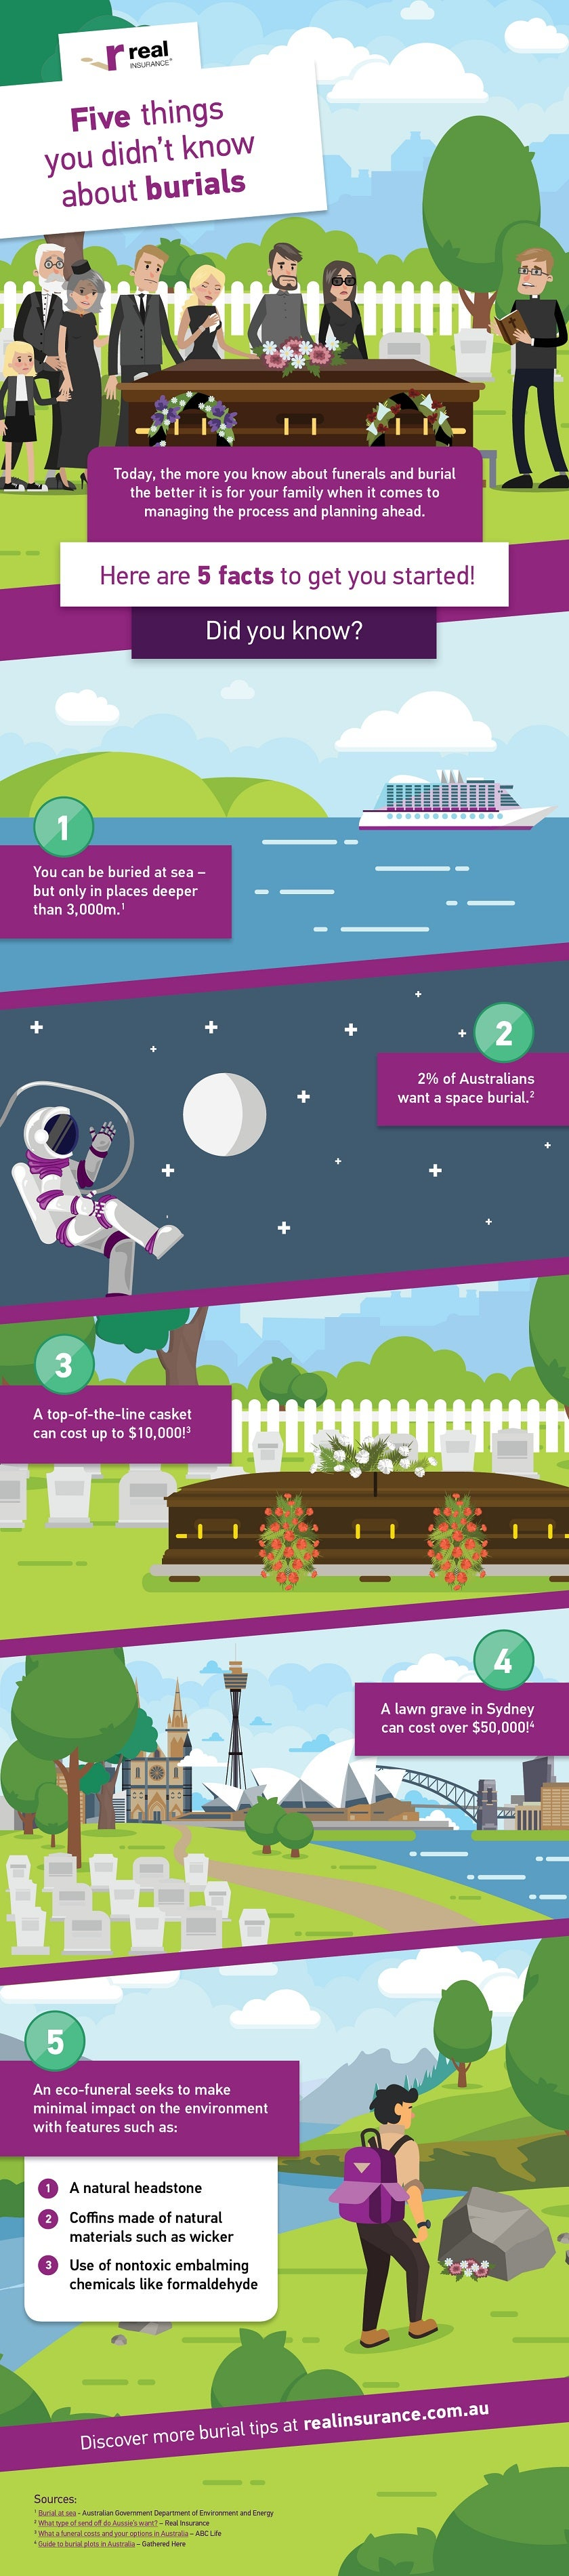 myths about funeral planning infographic